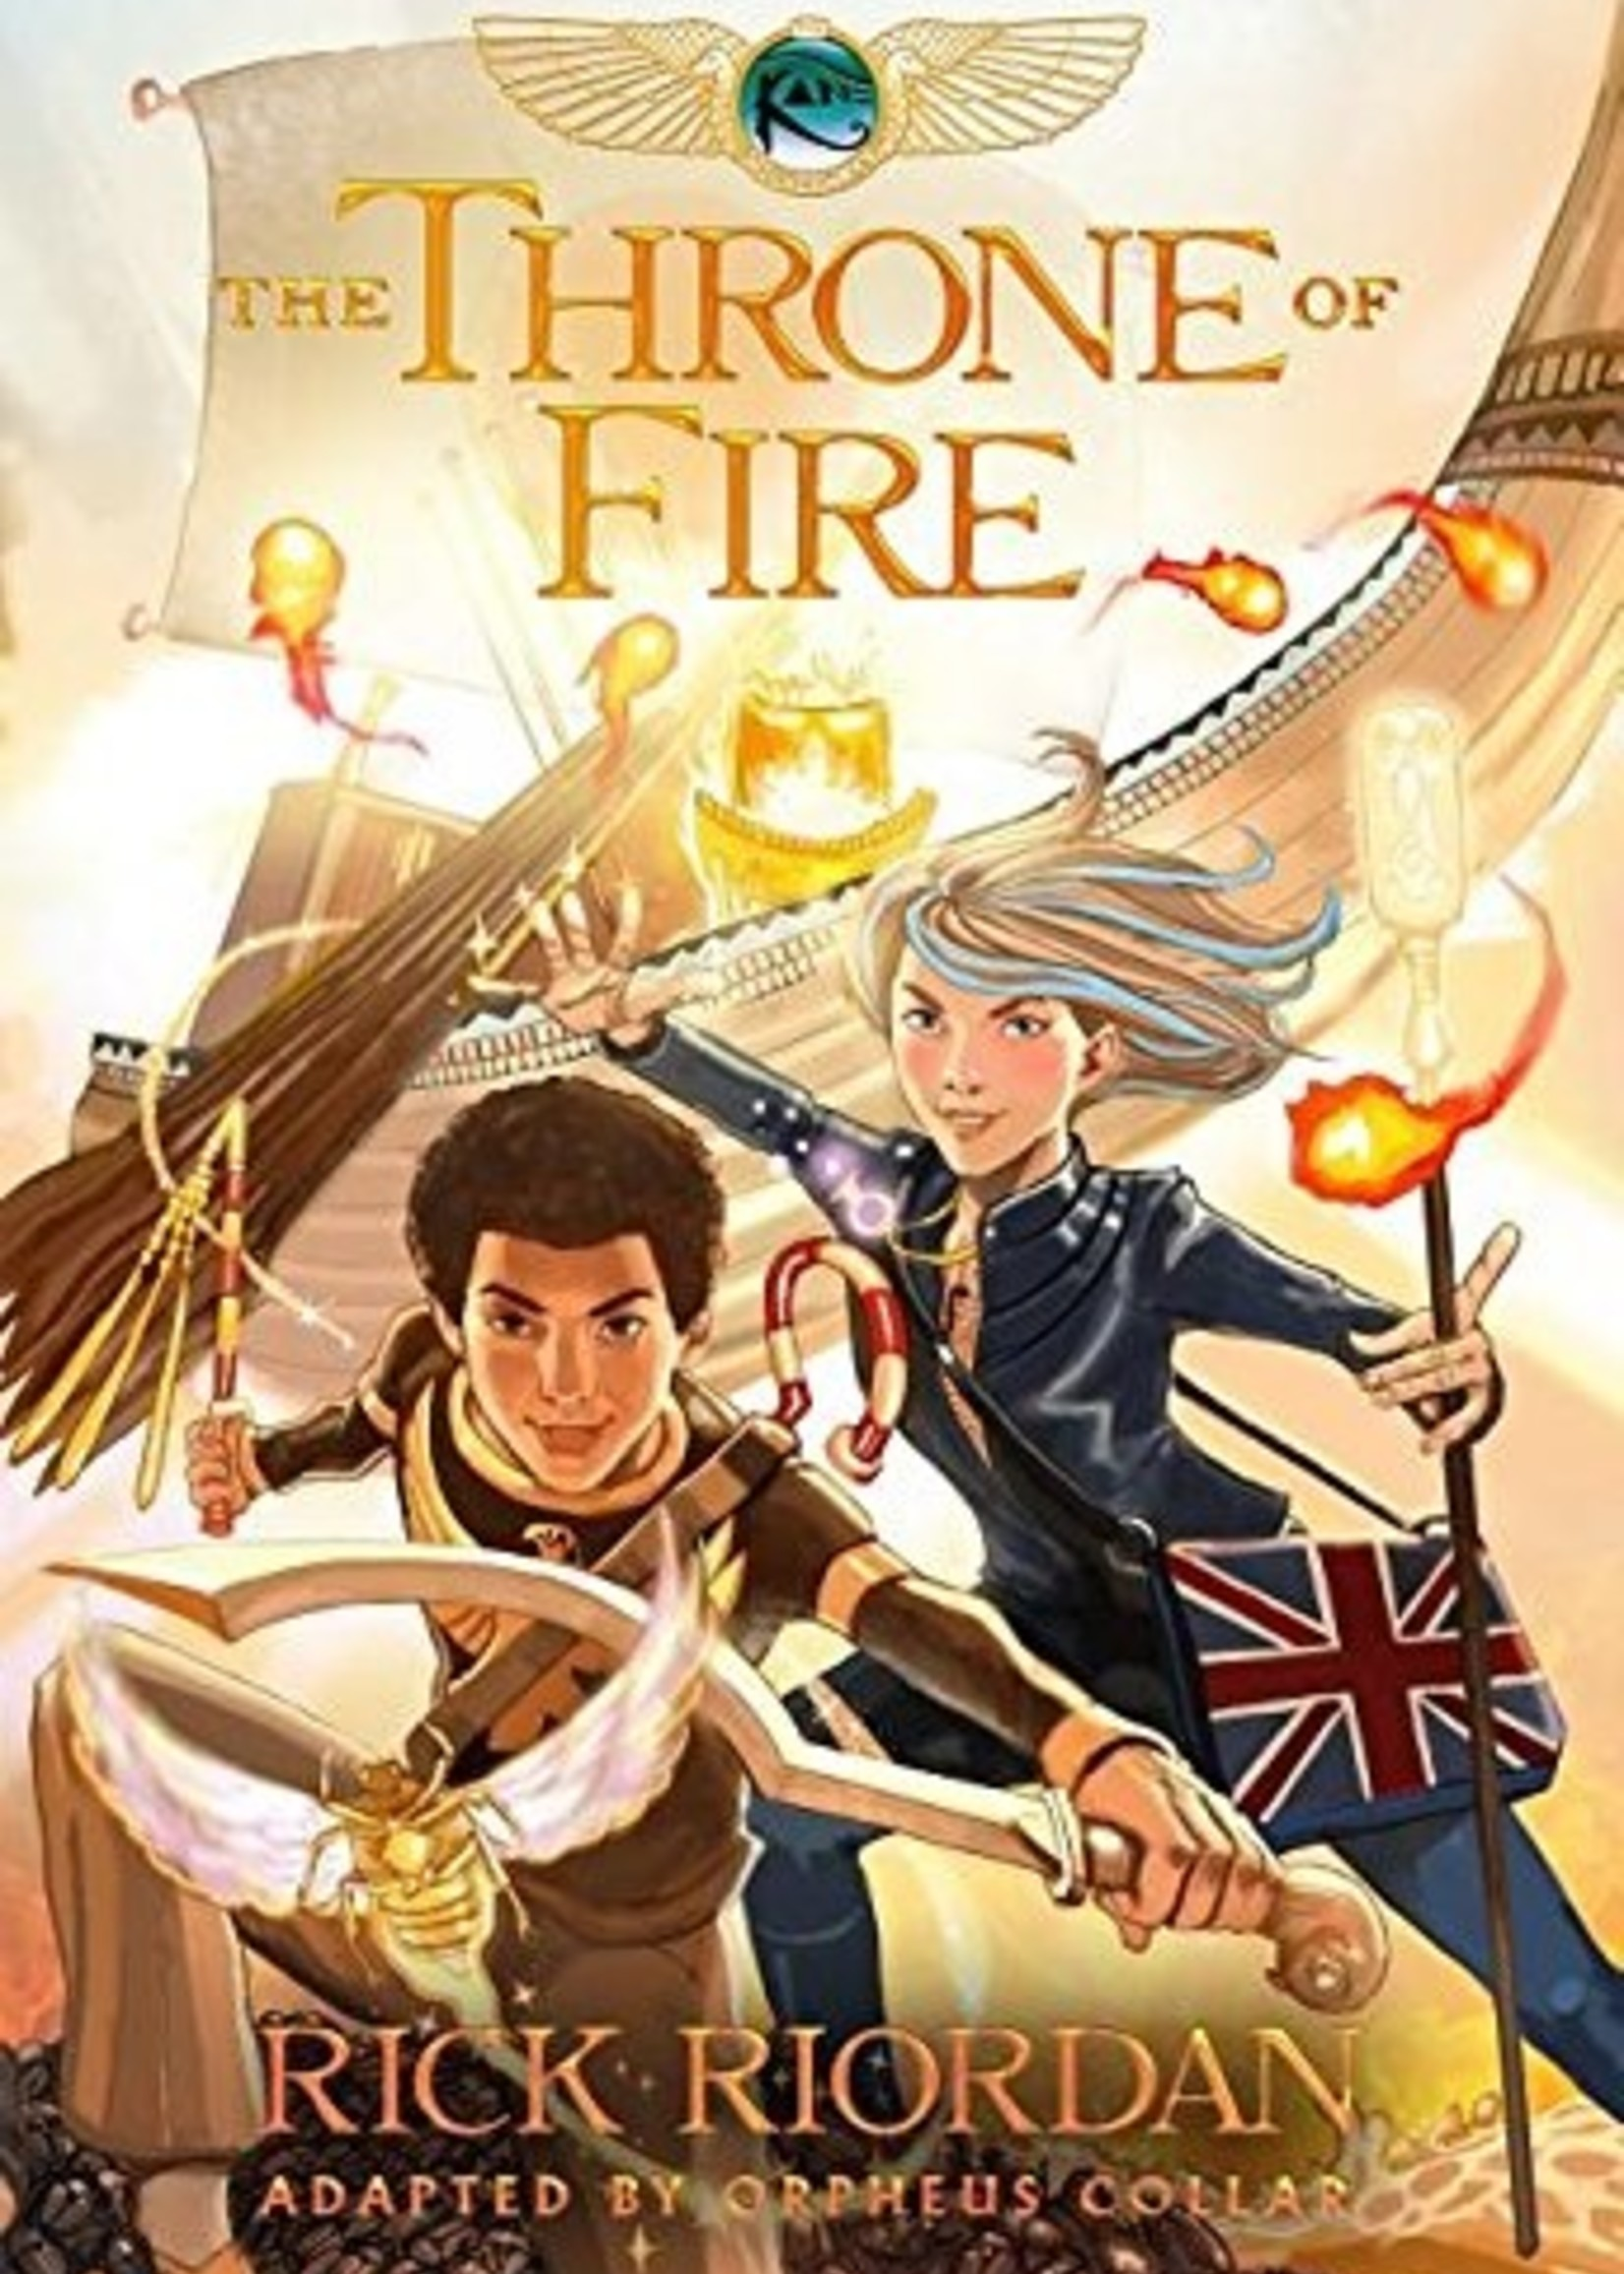 The Kane Chronicles #02, The Throne of Fire Graphic Novel - Paperback